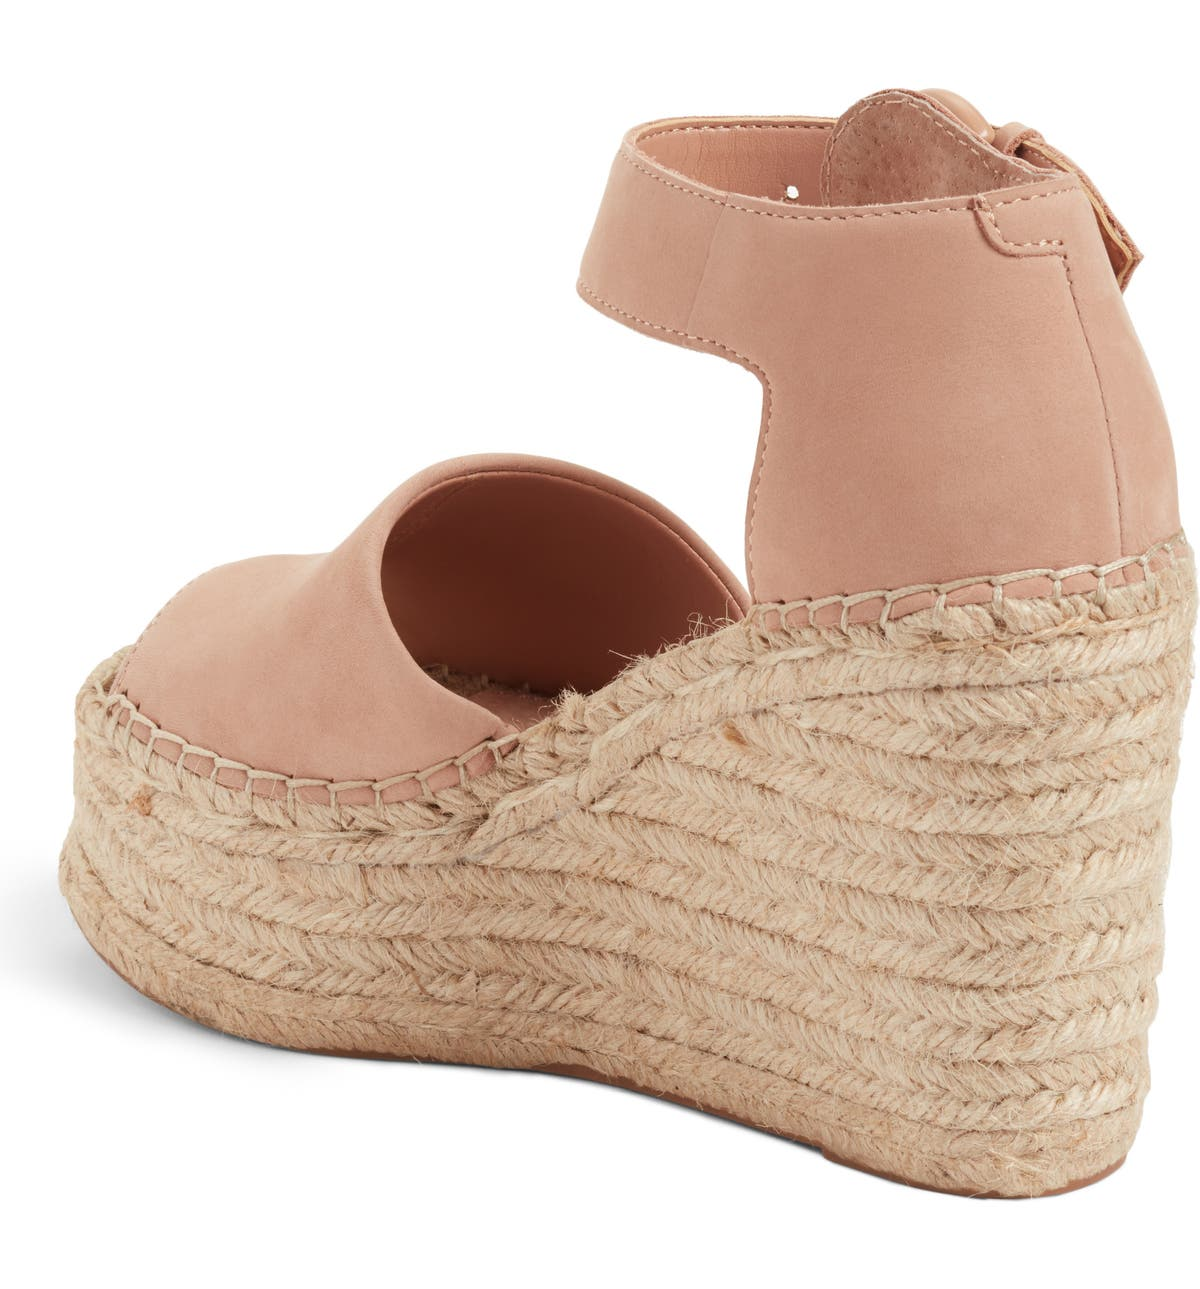 2c075e886c0 Marc Fisher LTD Alida Espadrille Platform Wedge (Women)